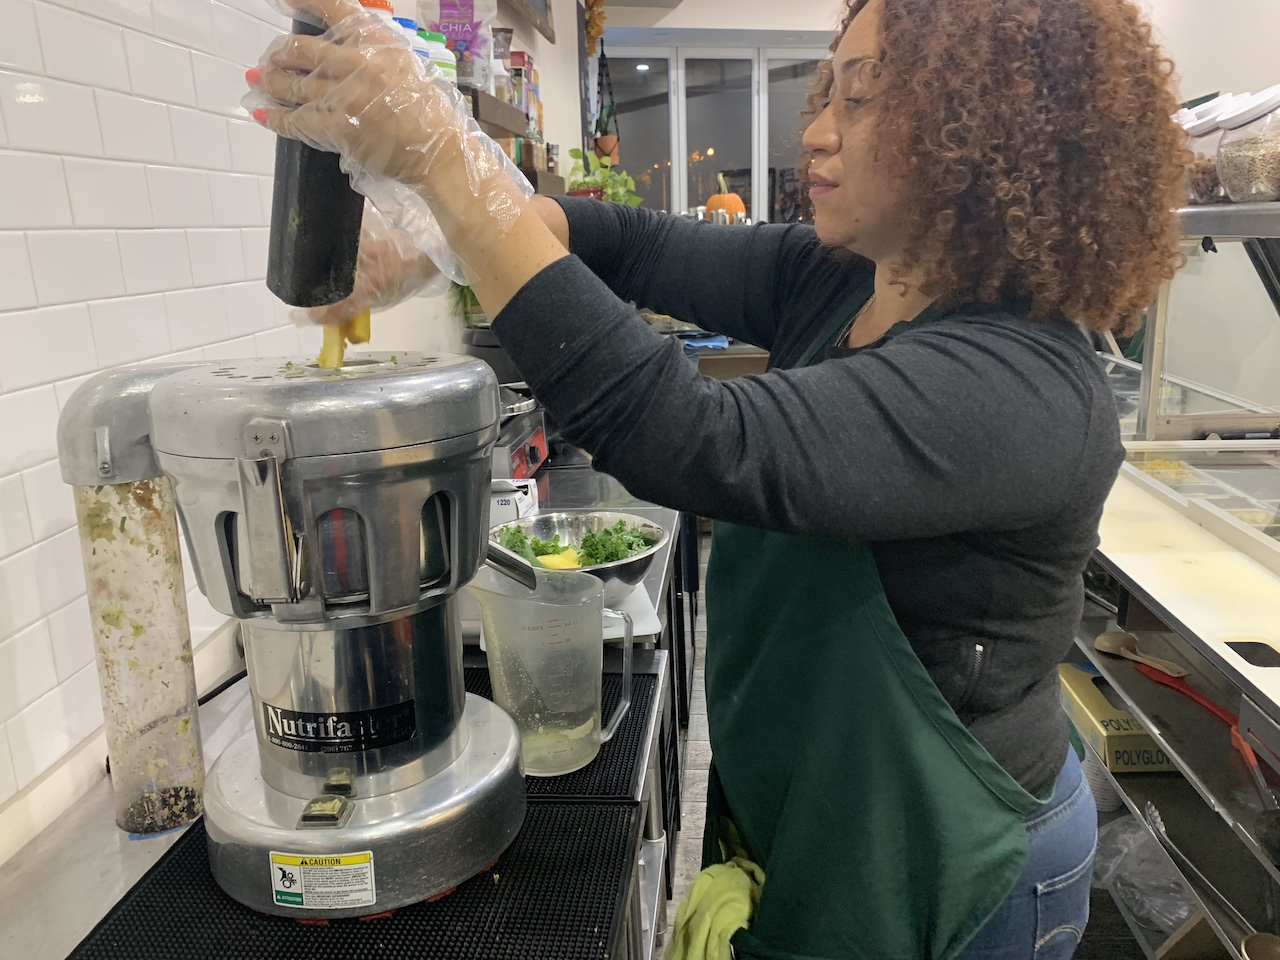 New juice bar aims to promote healthier options